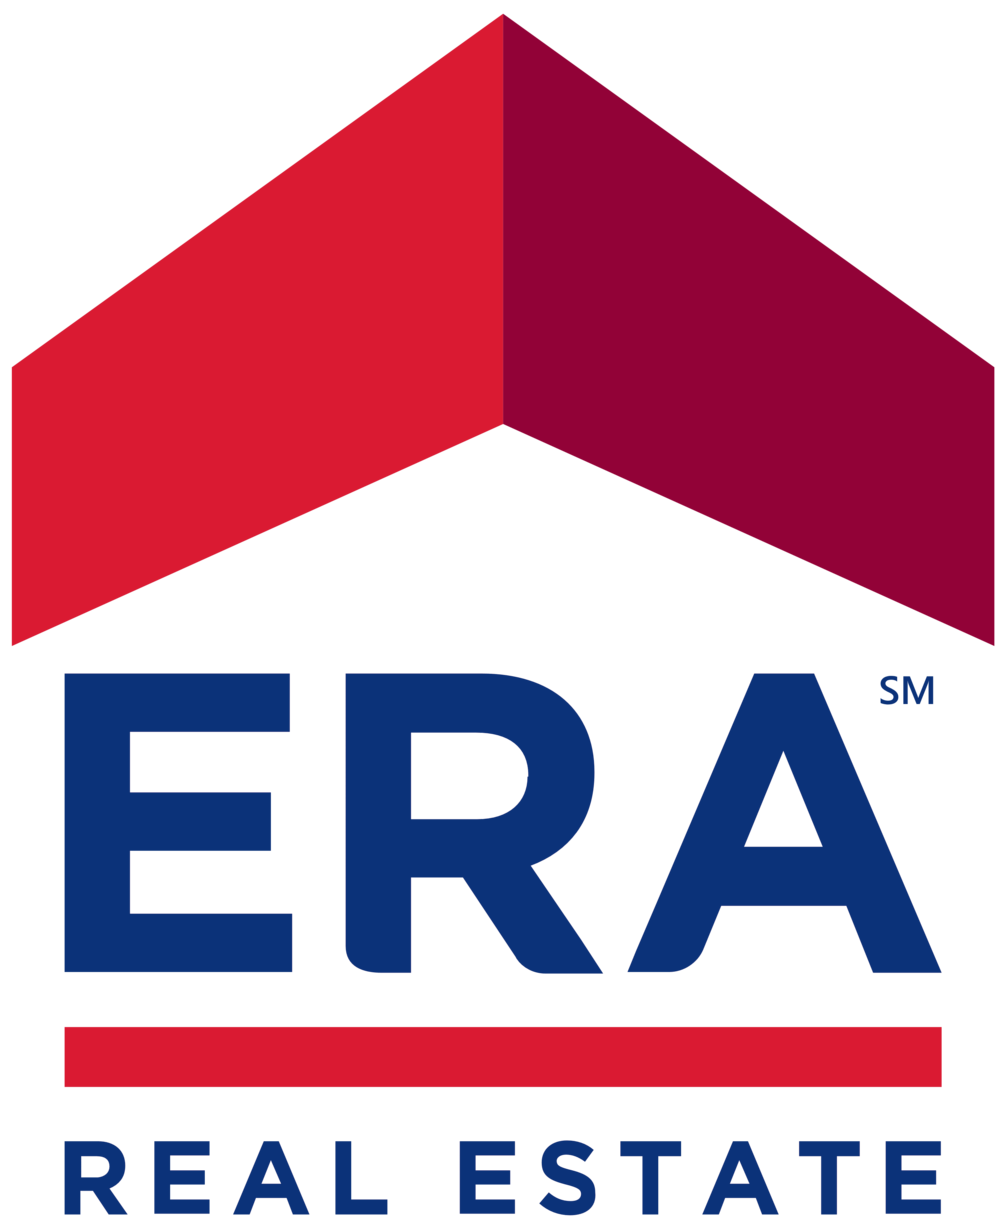 ERA_Real_Estate_logo.png